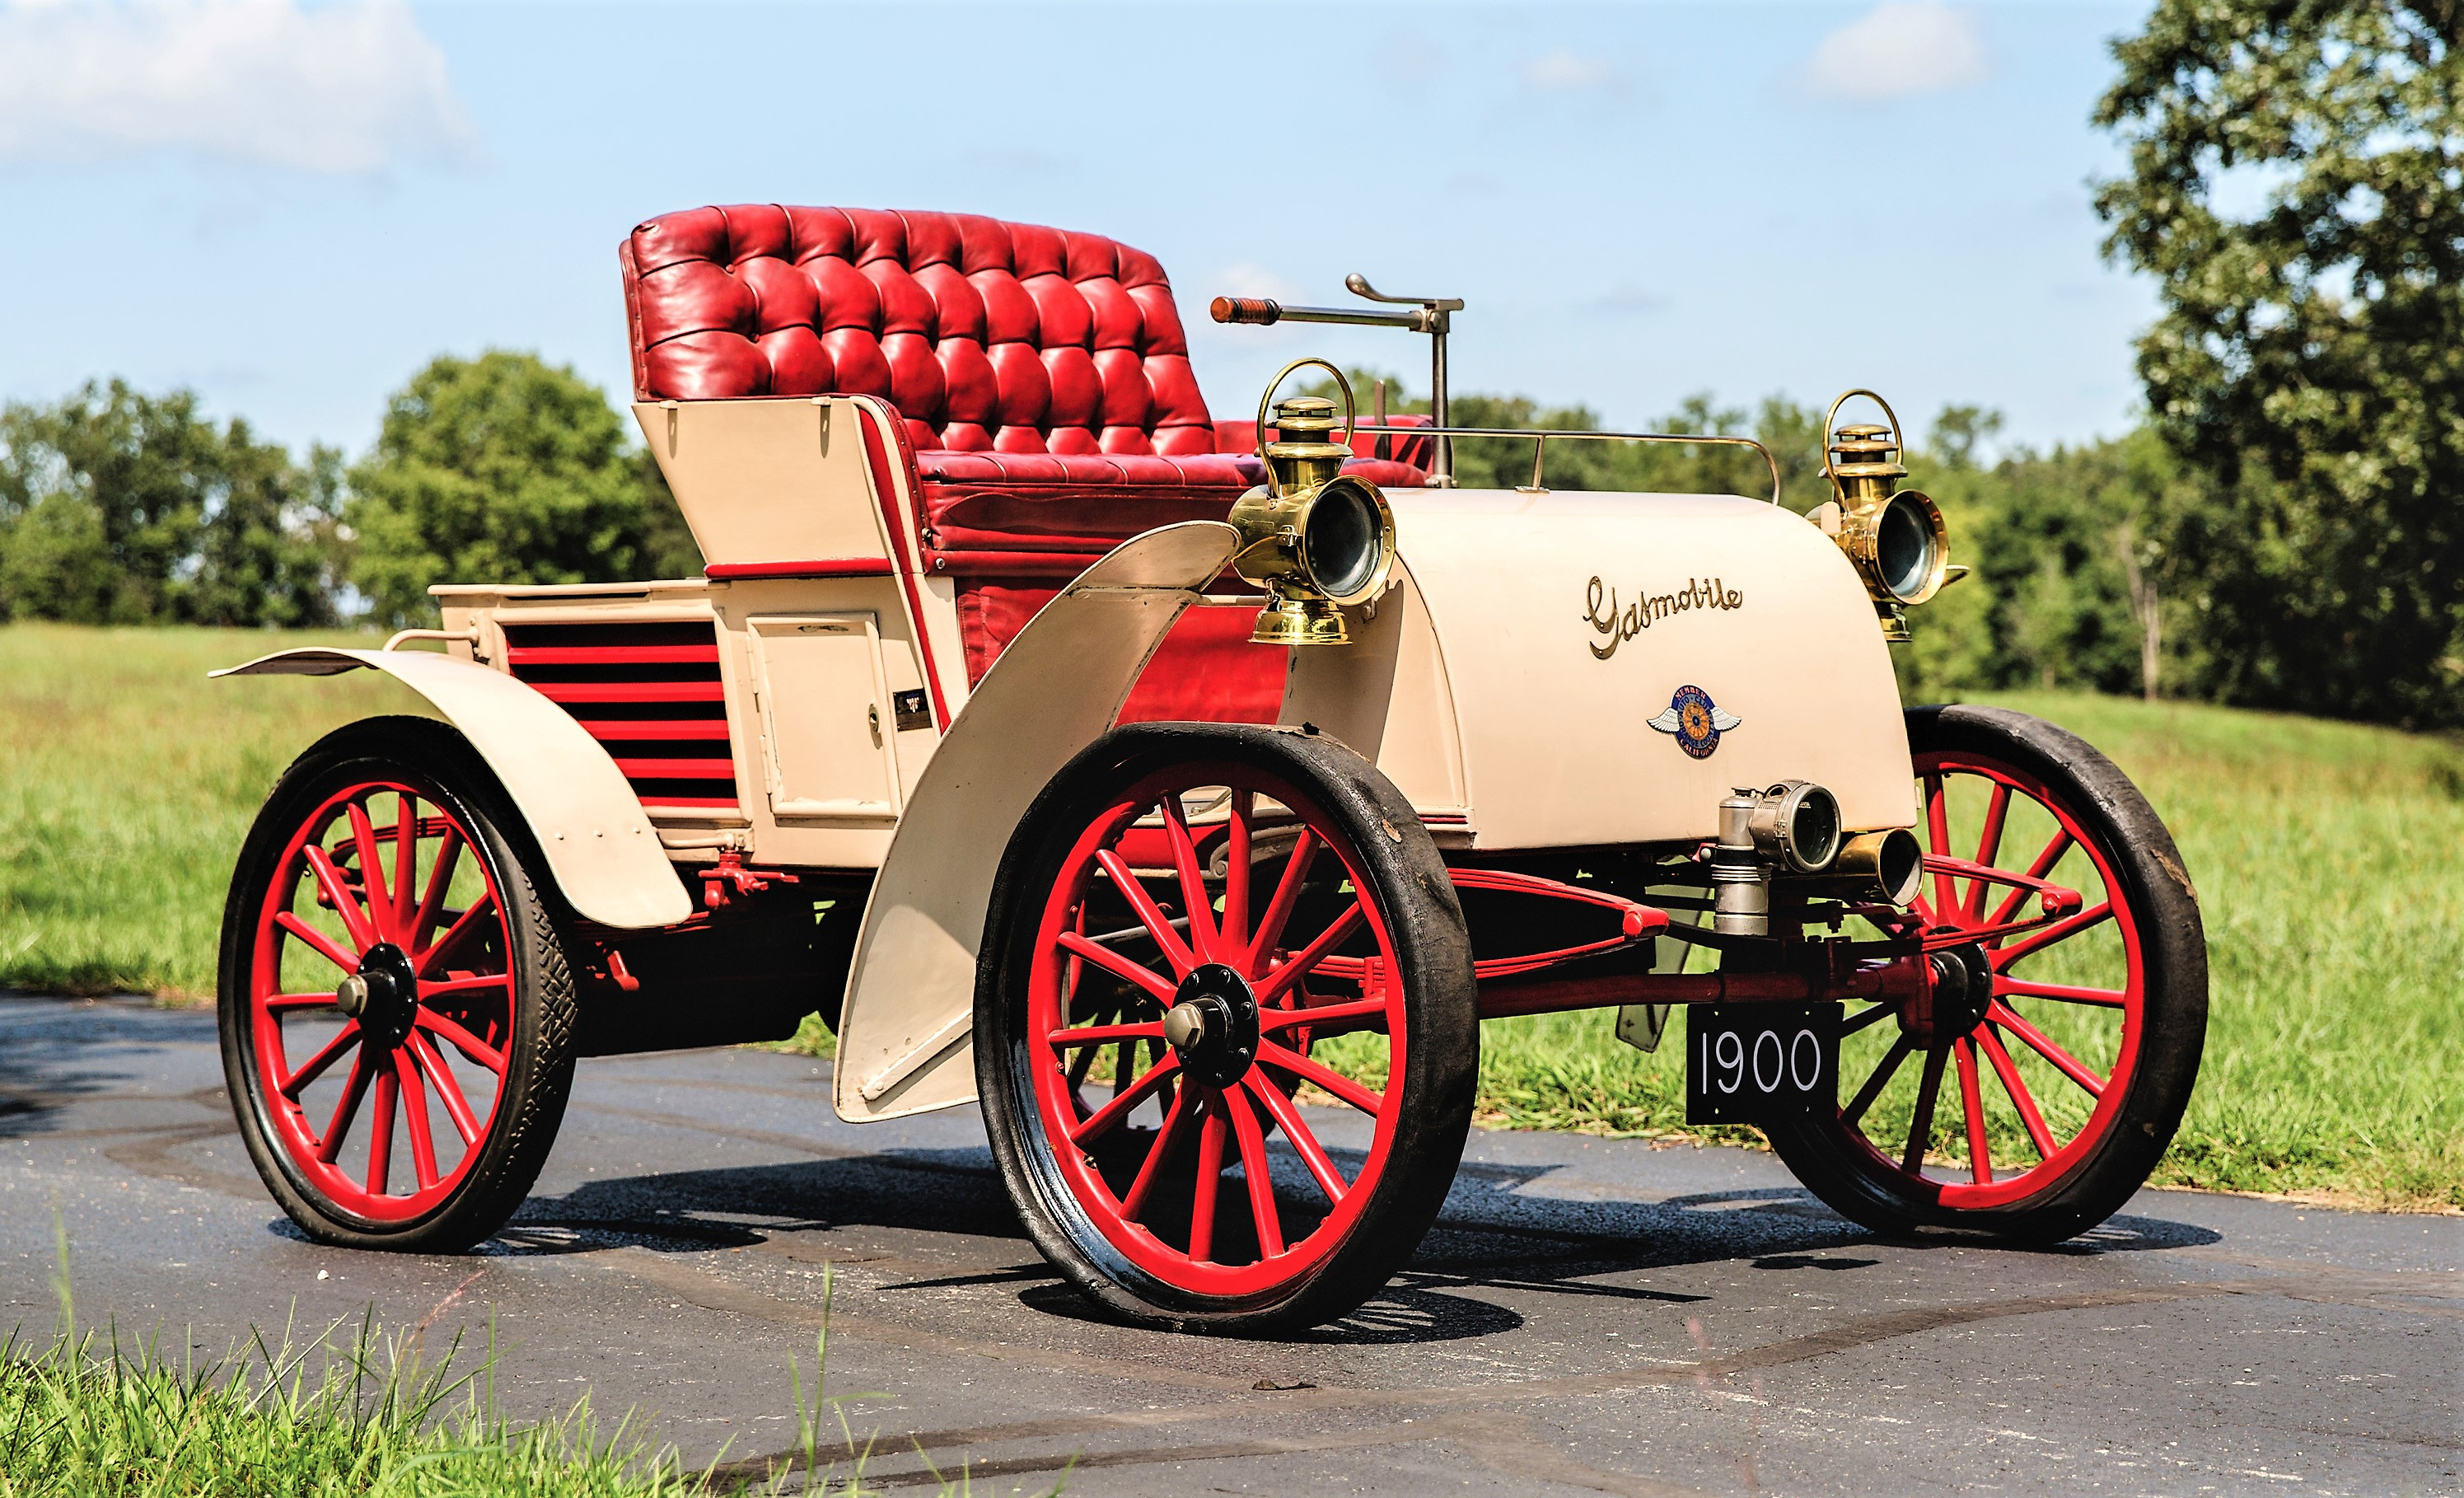 , Rare American classics to be auctioned at RM Sotheby's Hershey sale, ClassicCars.com Journal